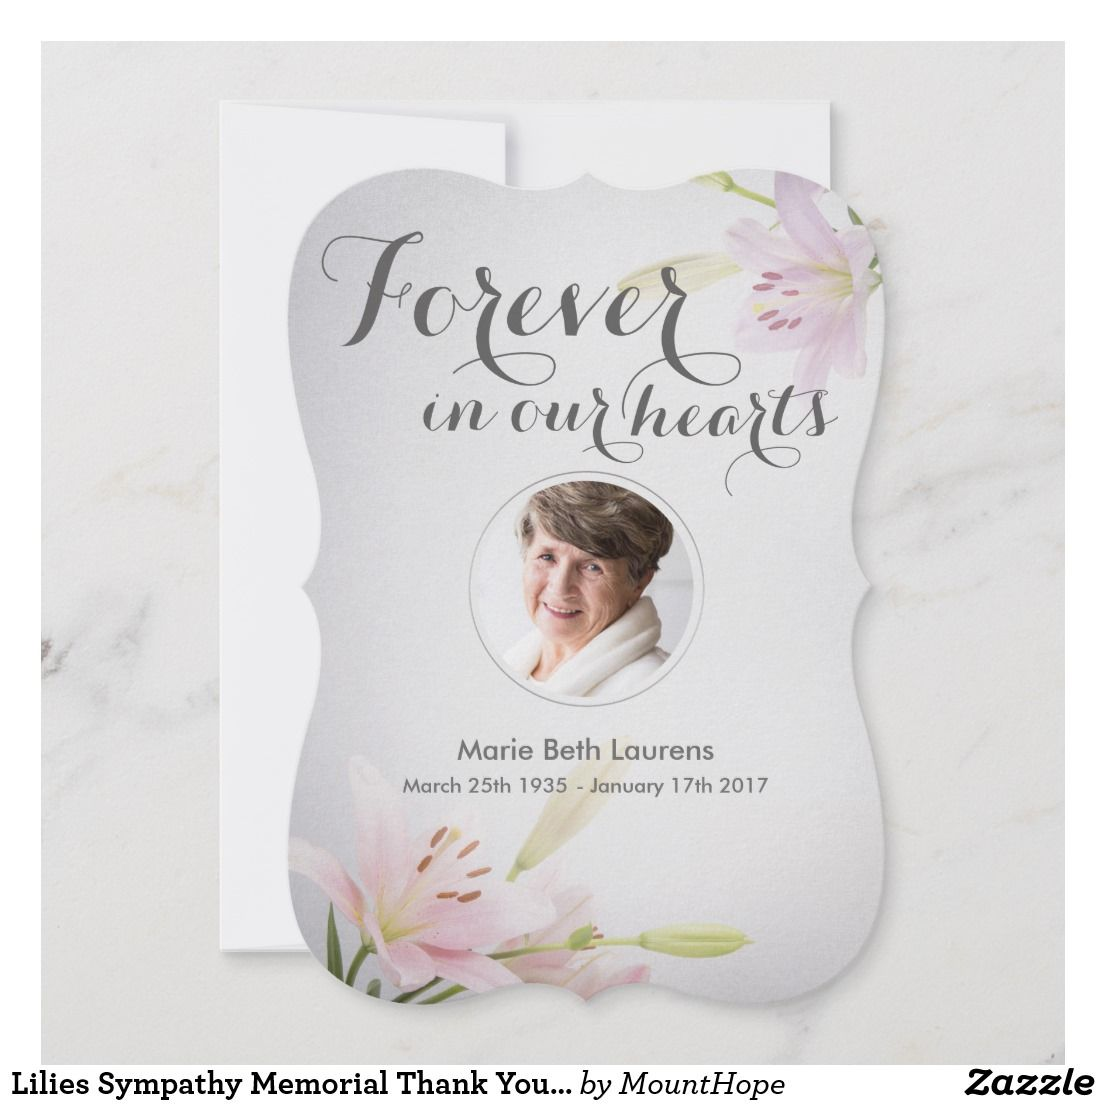 Lilies Sympathy Memorial Thank You Card With Photo Zazzle Com